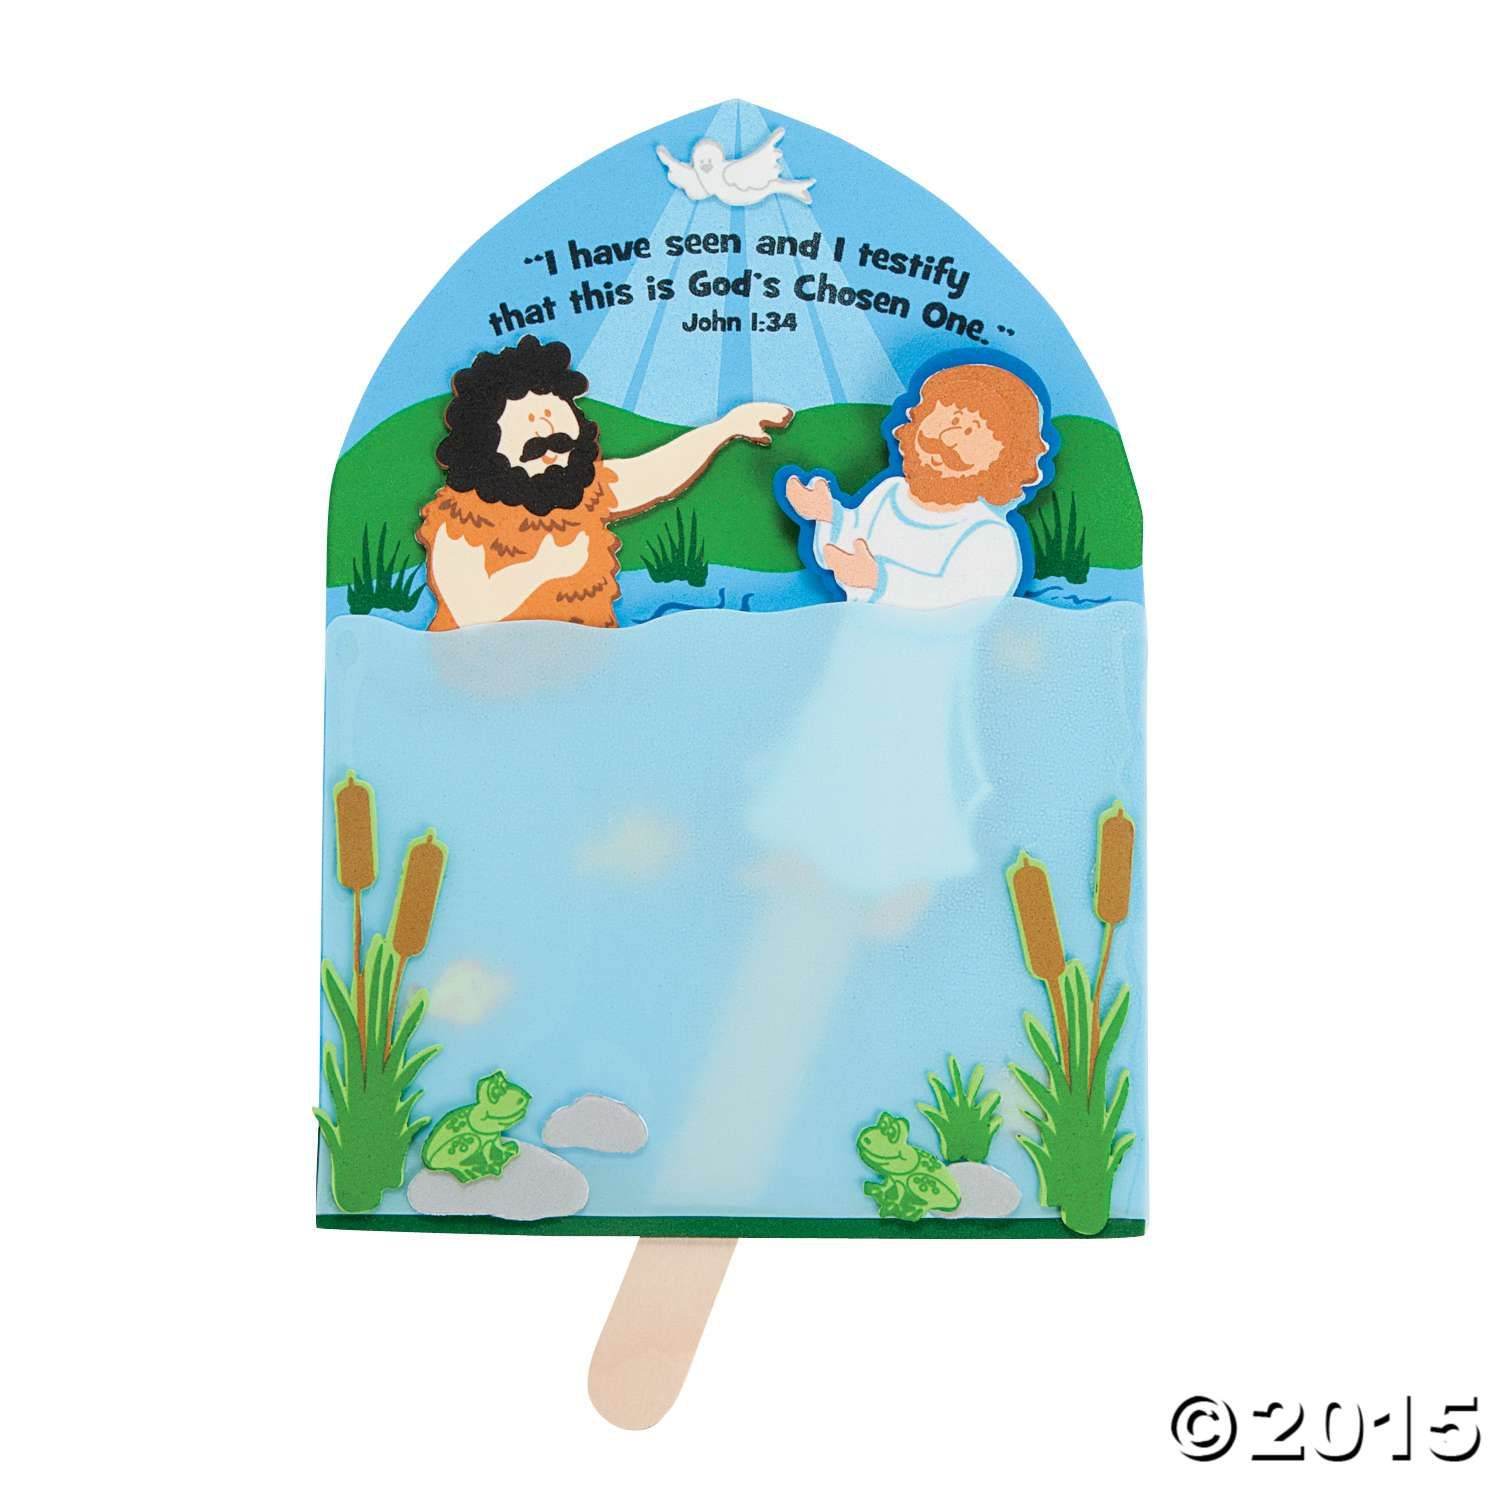 This Baptism Of Jesus Craft Kit Is A Great Way To Teach